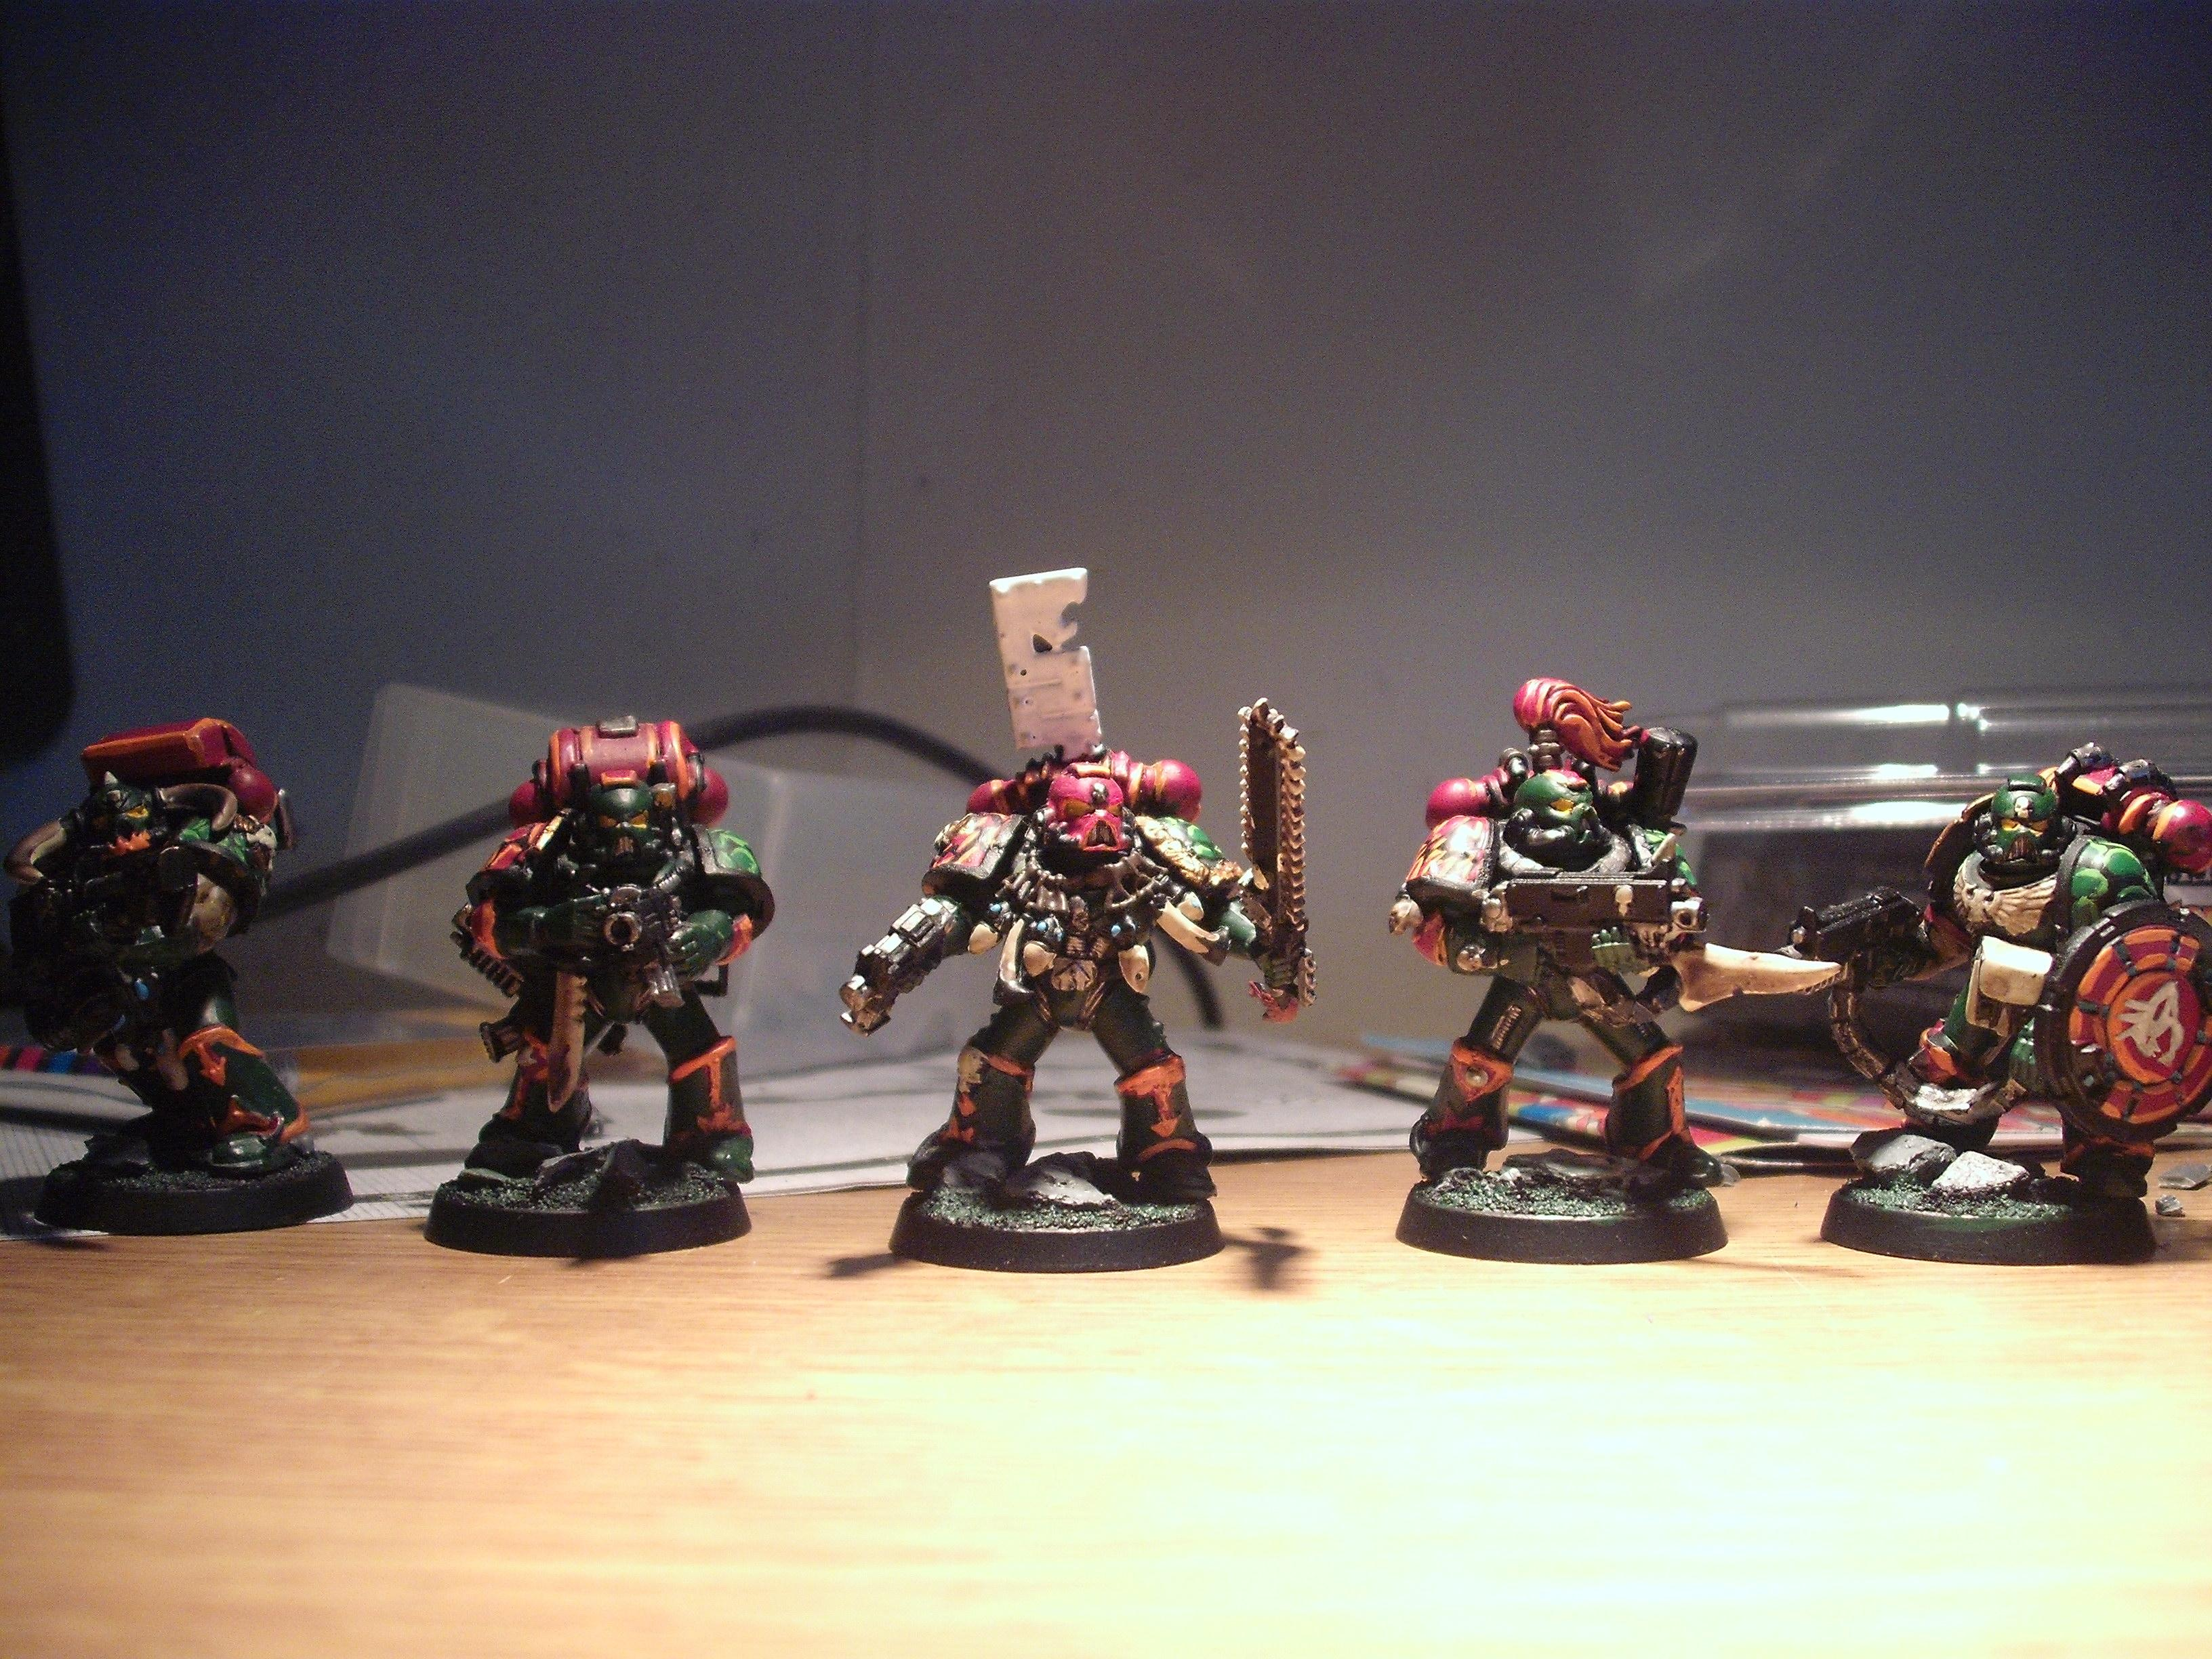 Chainsword, Counts As, Custom Shield, Flamer, Green, Heavy Back Packs, Oviraptors, Raptors, Space Marines, Specialised Boltguns, Stalker